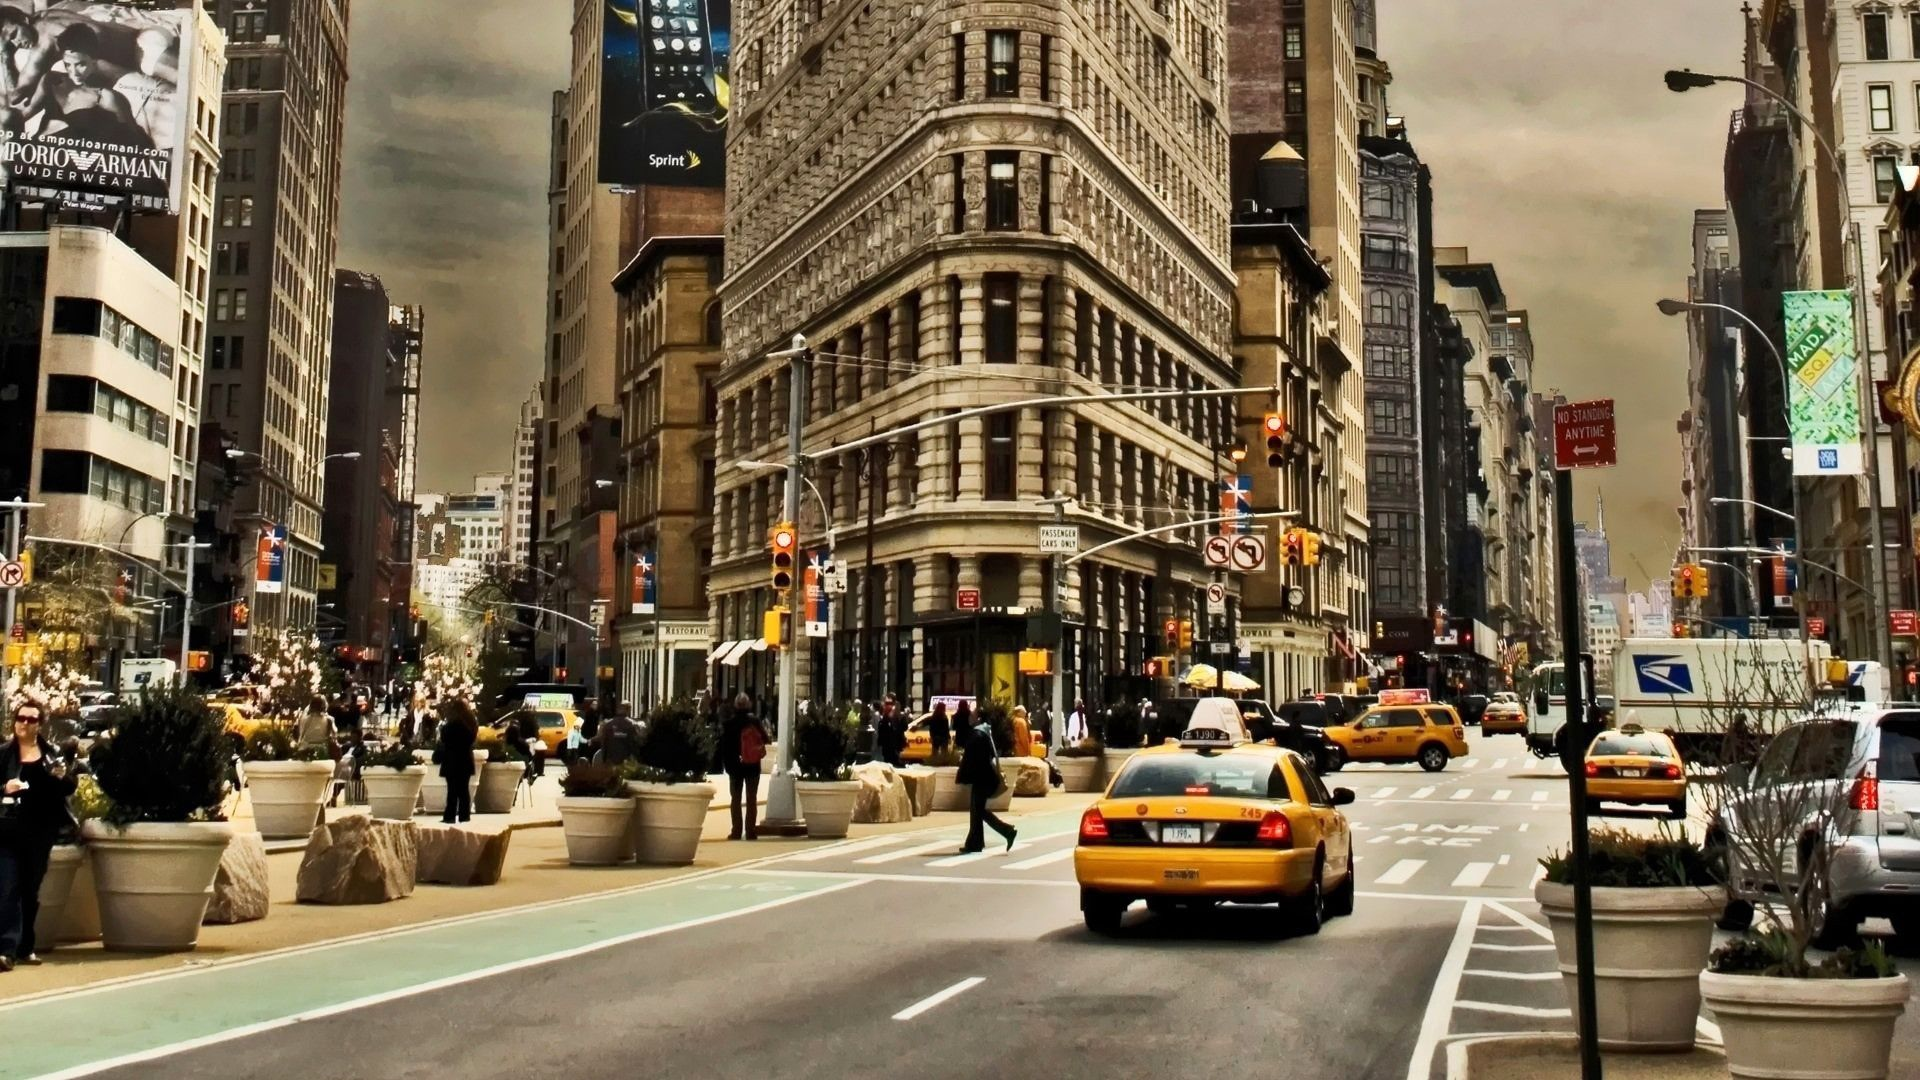 79715 download wallpaper Usa, United States, Manhattan, Street, Traffic, Movement, Cities screensavers and pictures for free